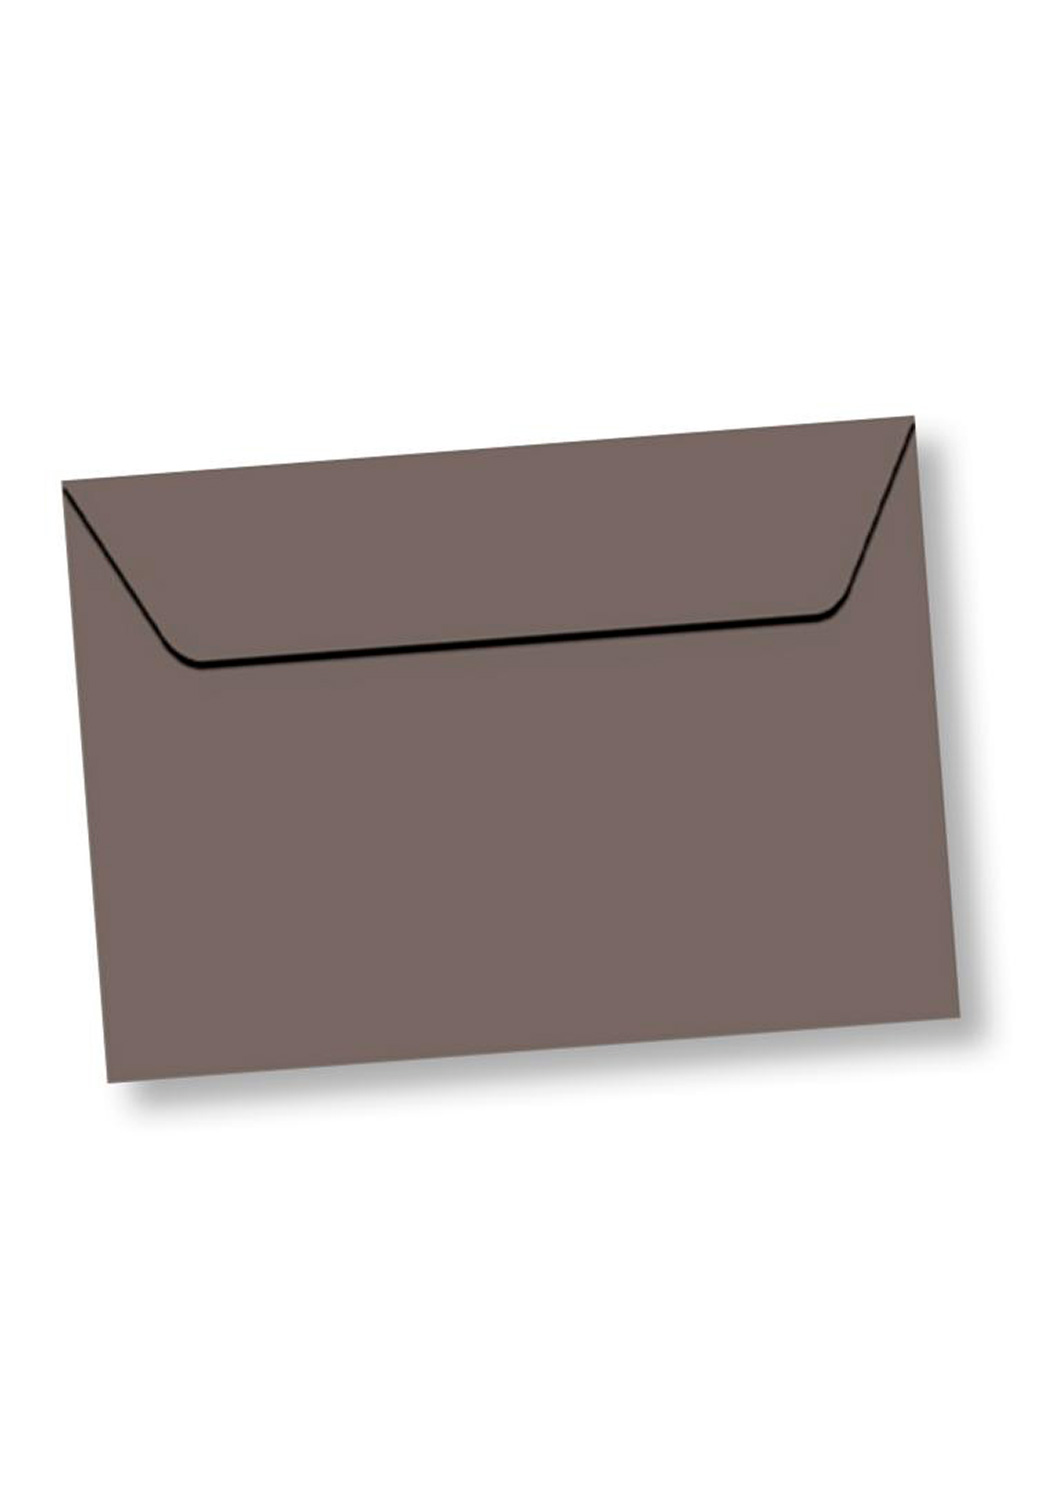 Marcello-art: Wish Card Rectangle envelope A5 velin 162x229 mm color taupe